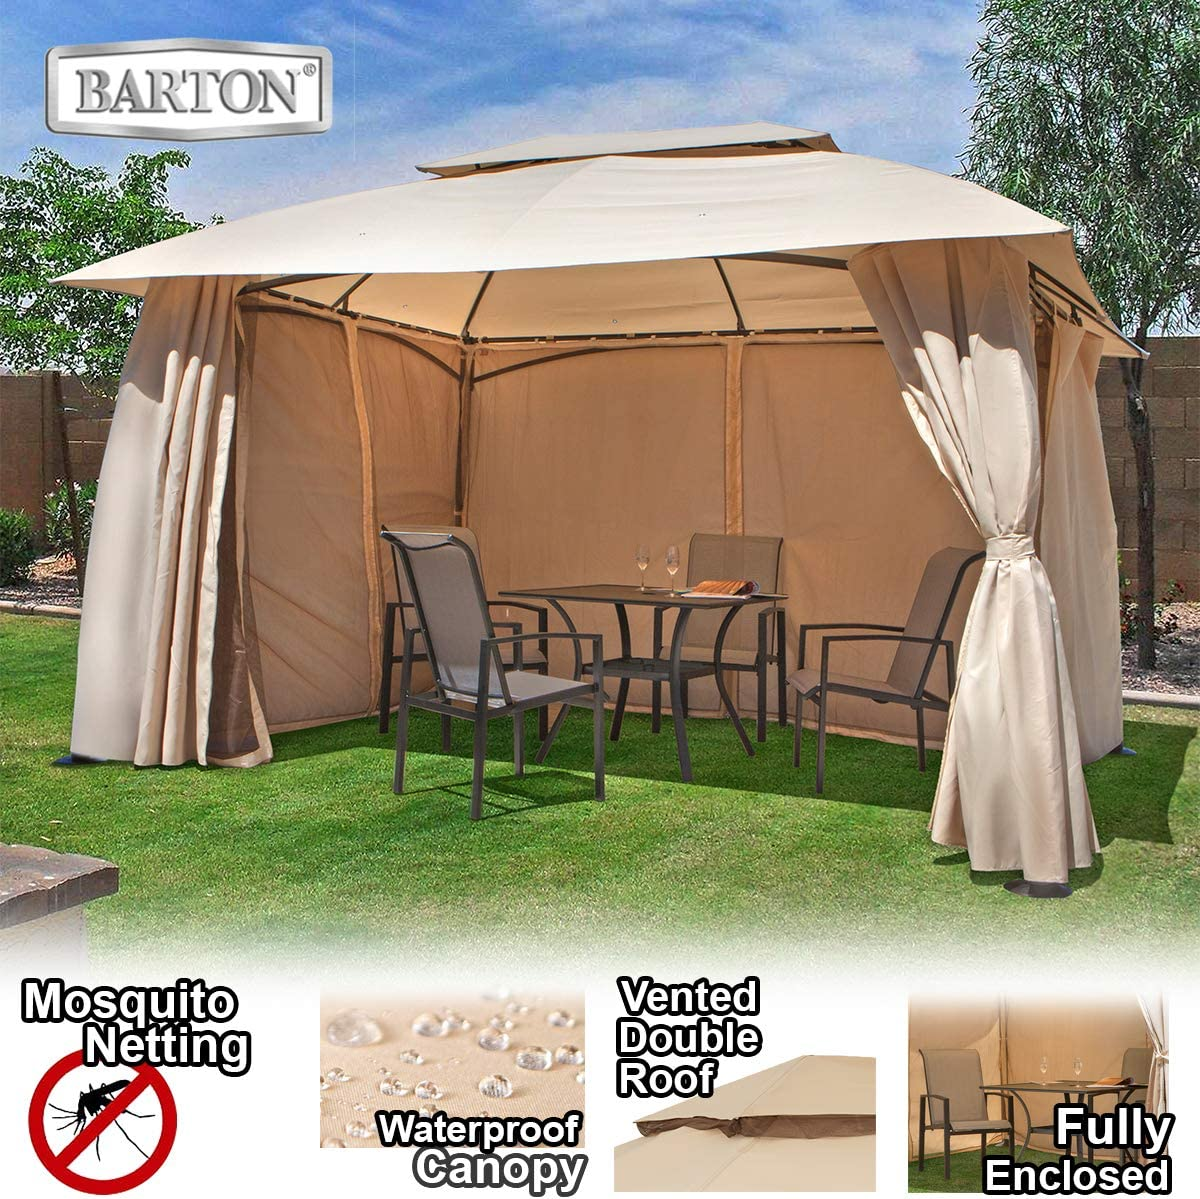 Barton 10 x 13 ft Garden Patio Gazebo Fully Enclosed All-Season UV-Resistant w Mosquito Netting and Curtain